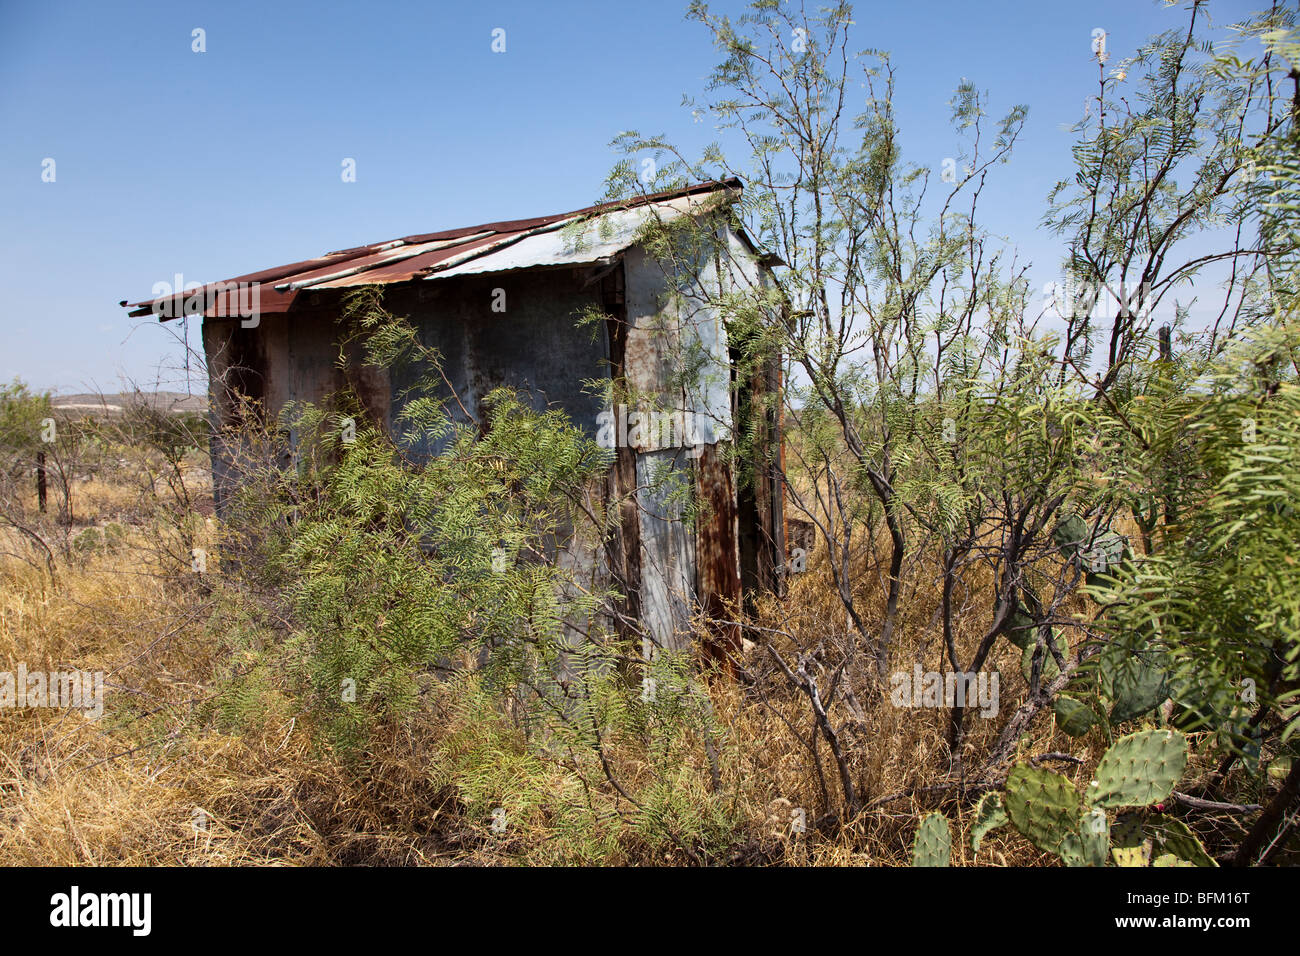 Remains of outhouse in ghost town of Langtry Texas USA - Stock Image